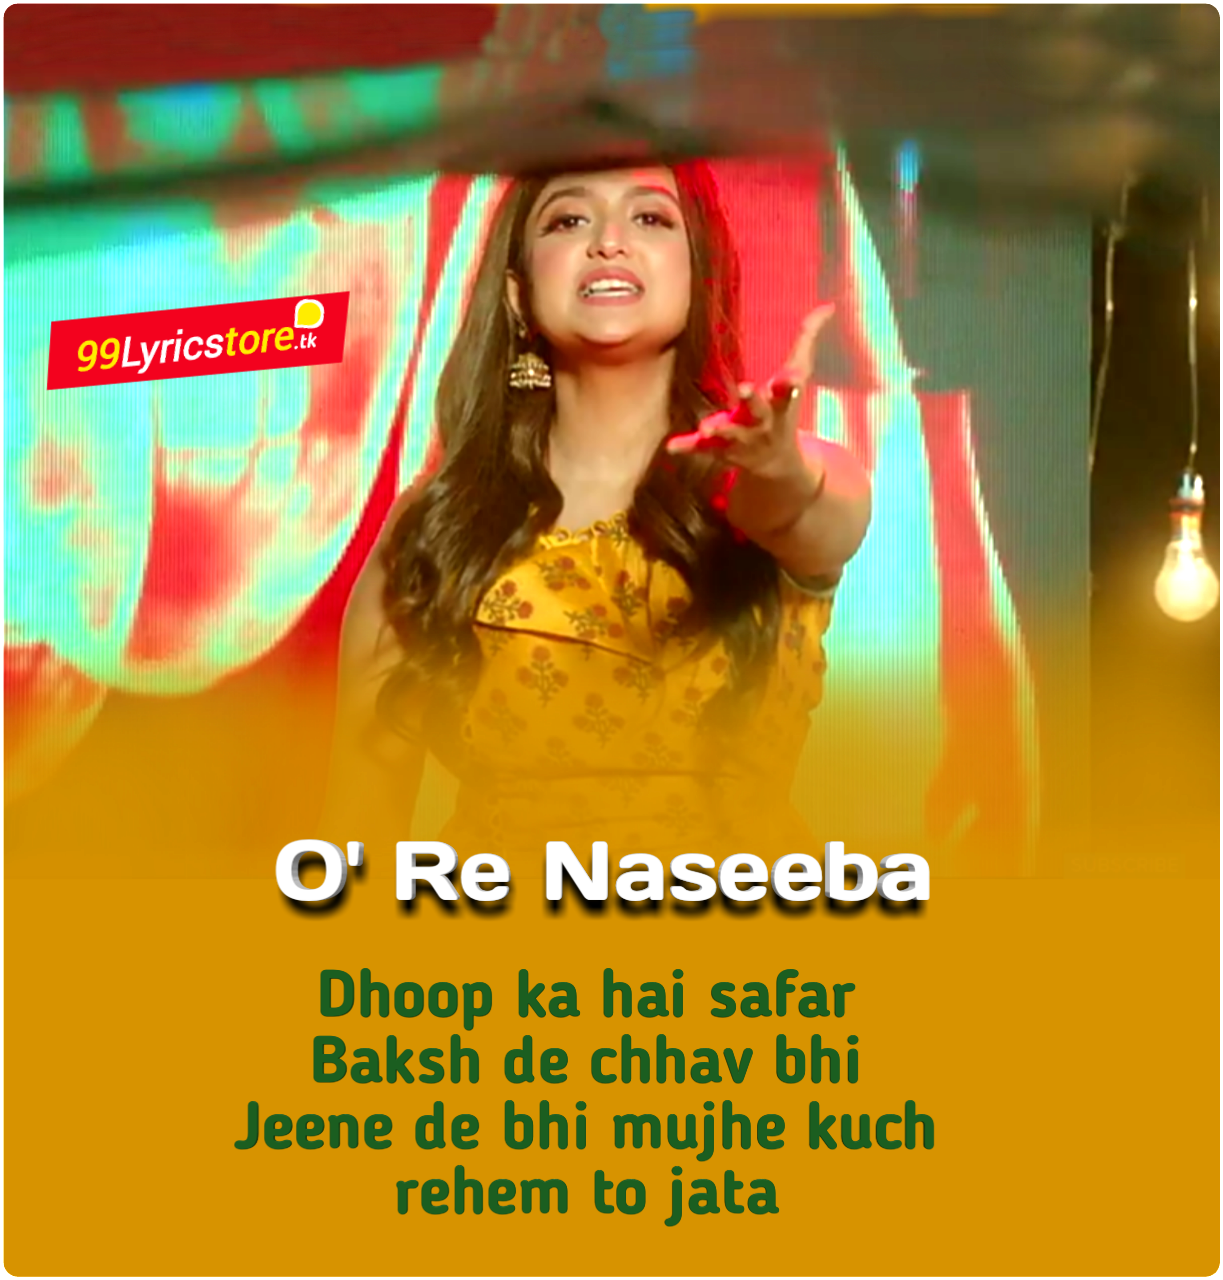 O' re Naseeba Lyrics Monali Thakur, Monali Thakur o' re Naseeba song lyrics, O' re Naseeba song Monali Thakur images, Krishika Lulla O' Re Naseeba song lyrics, Krishika Lulla O'Re Naseeba Monali Thakur Song Lyrics, O' Re Naseeba Krishika Lulla Lyrics,